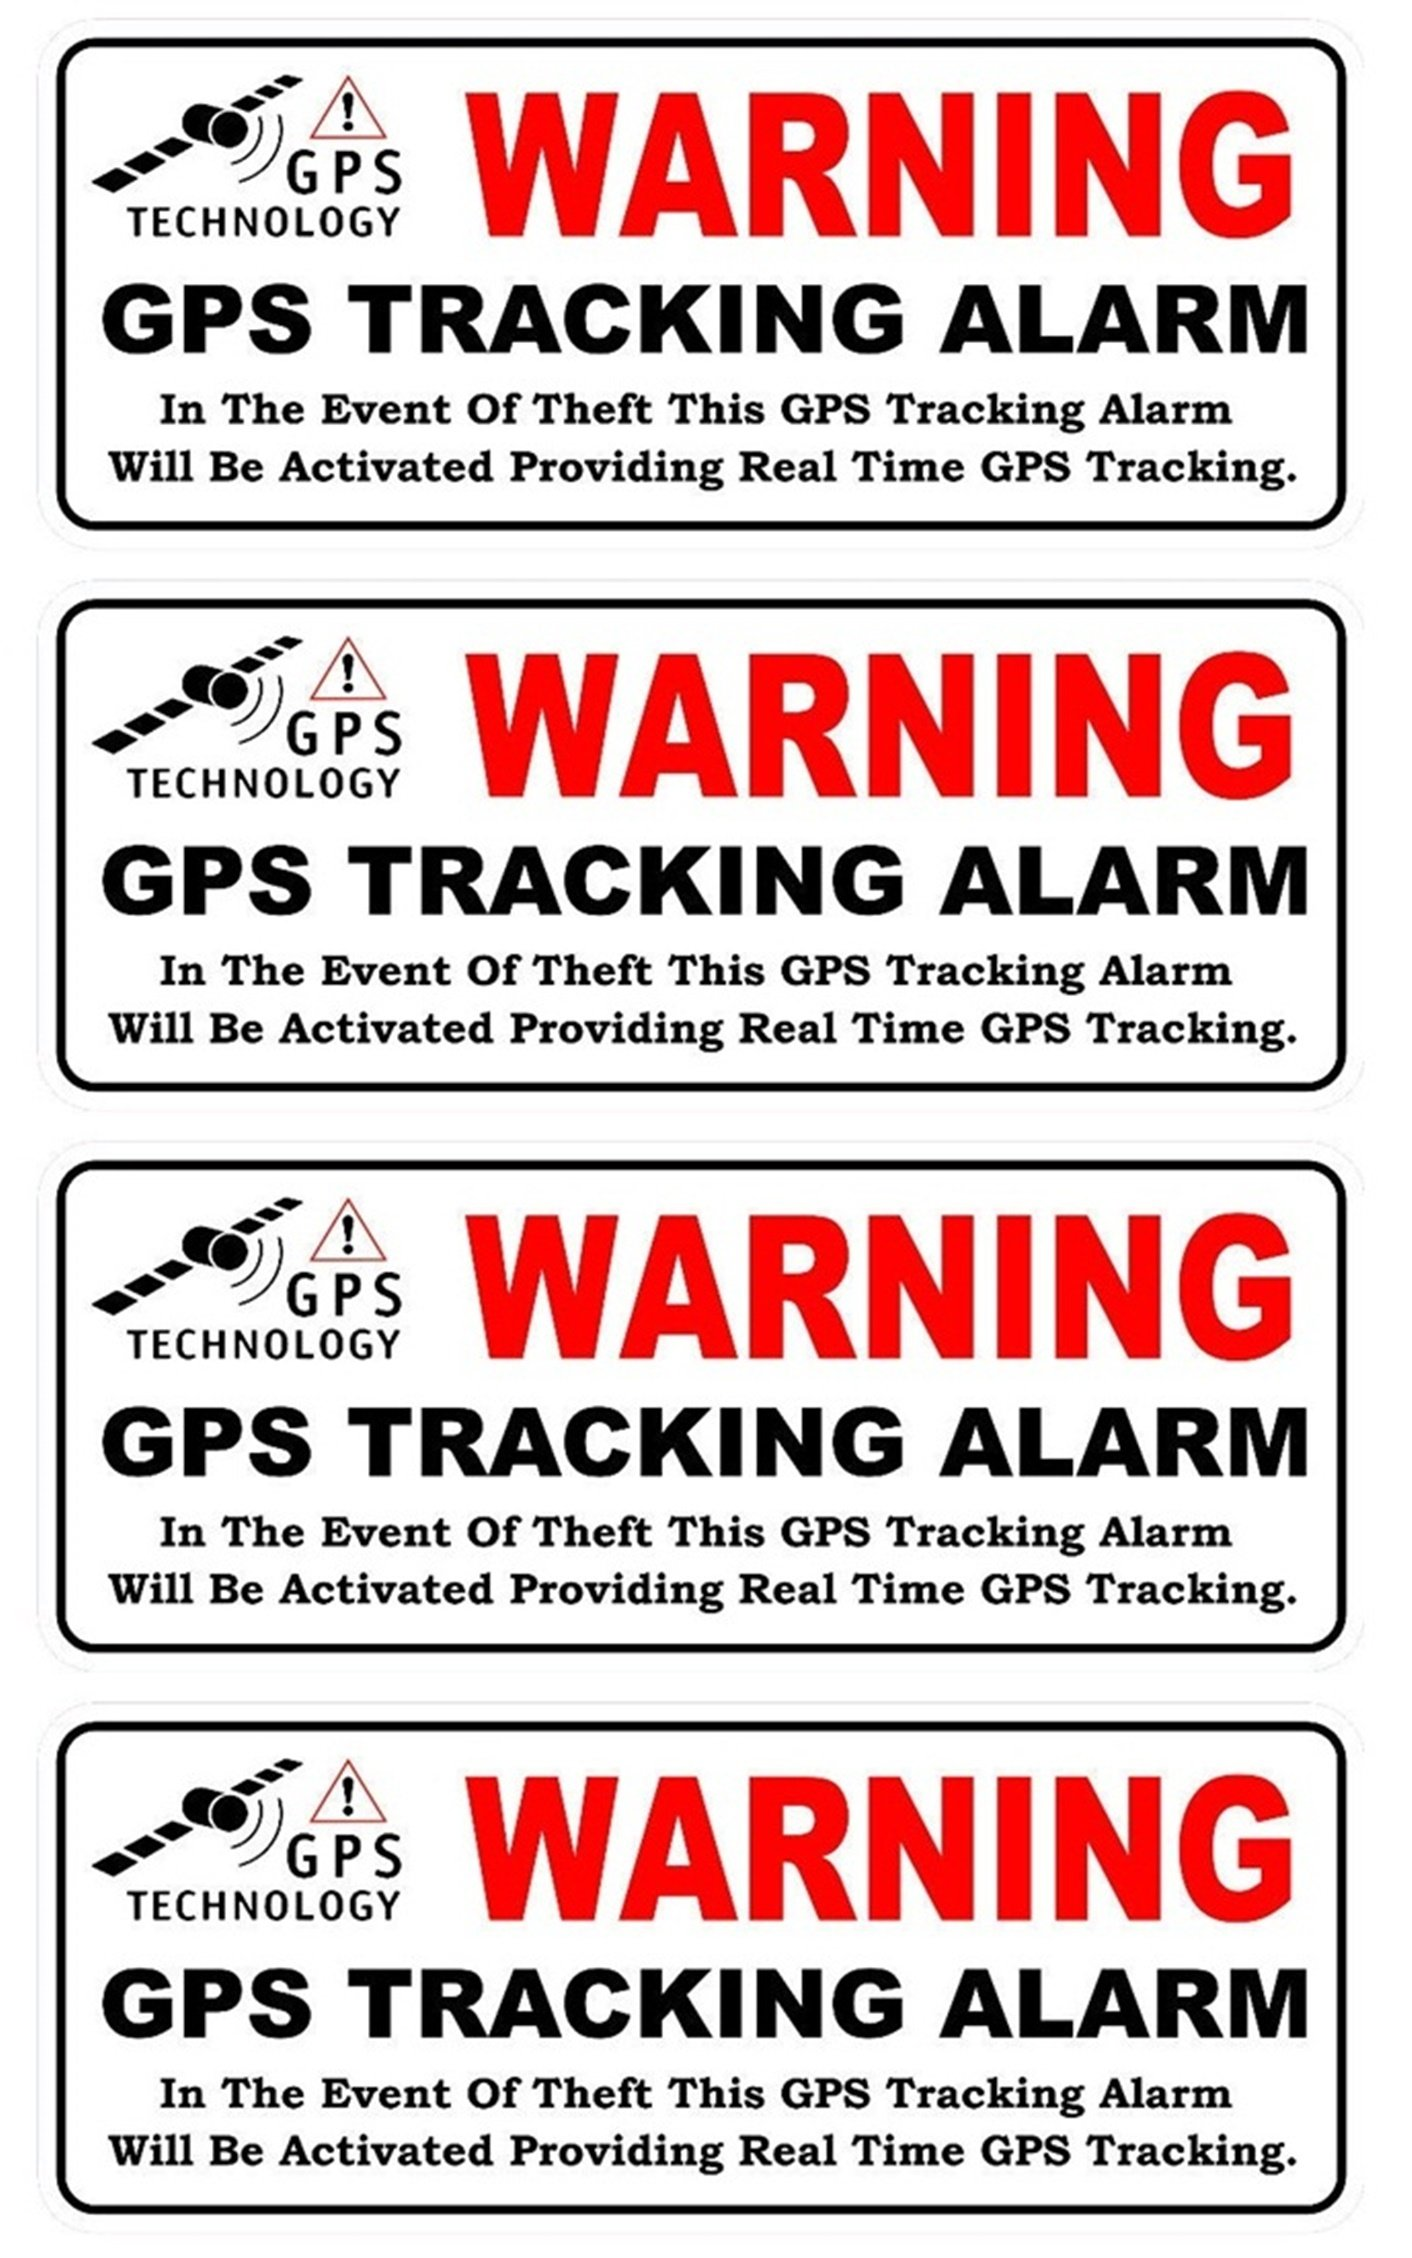 4 Pcs Glistening Unique Warning GPS Tracking Alarm Technology In The Event of Theft This Will be Activated Providing Real Time Back Adhesive Stickers Sign Cameras Premises Security Size 4.5''x1.5''